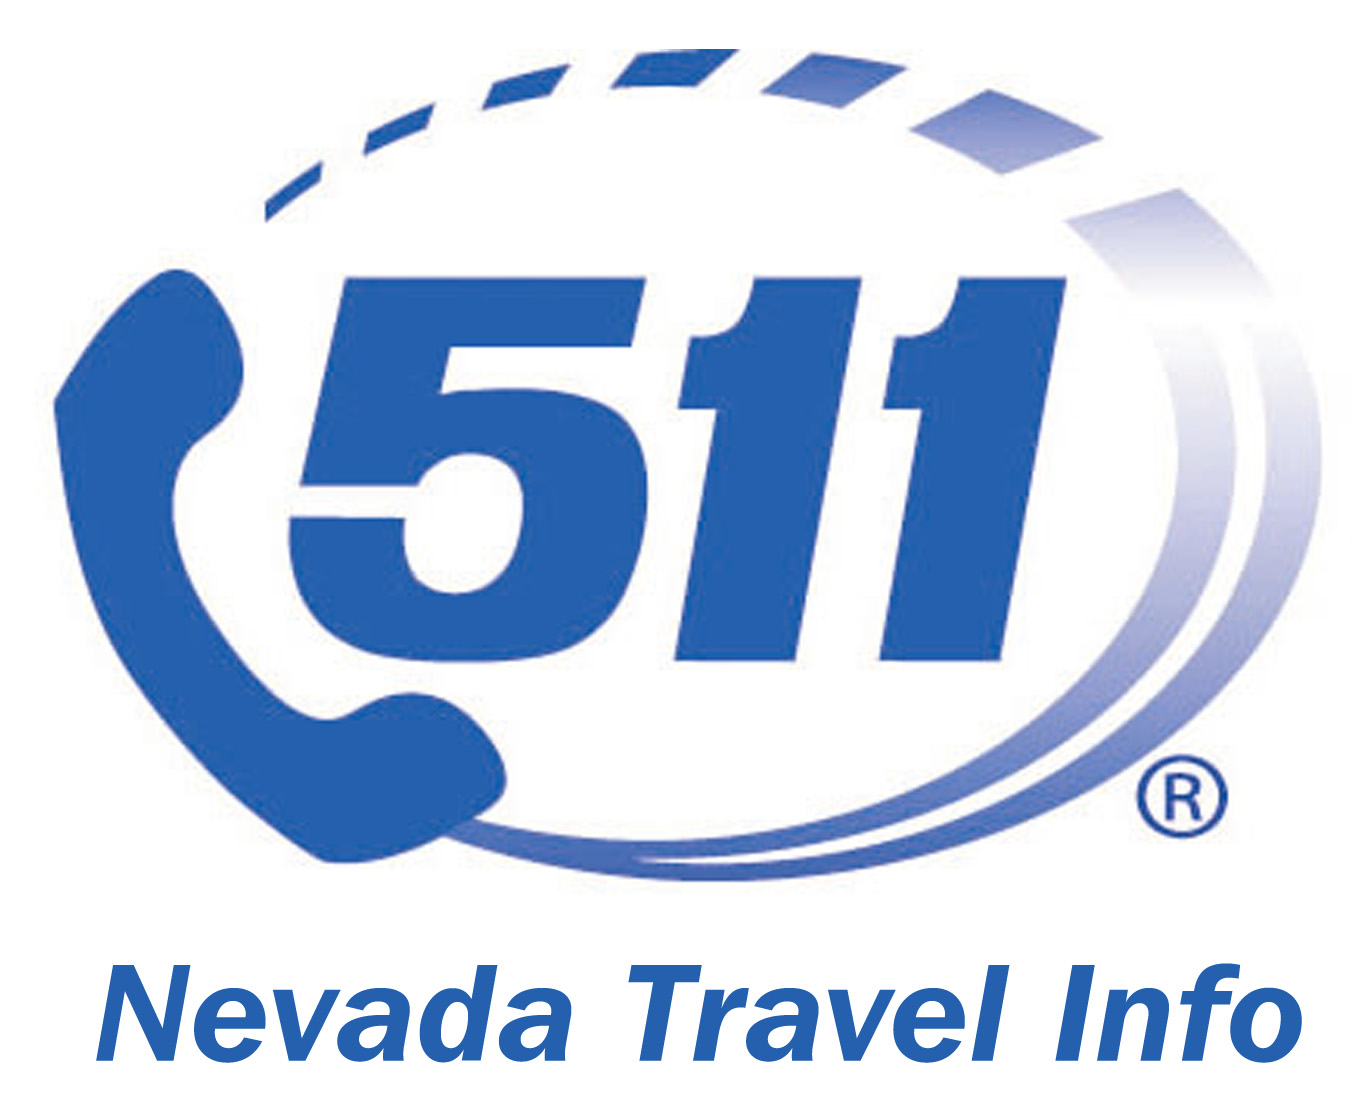 The logo for Nevada's 5-1-1 telephone service